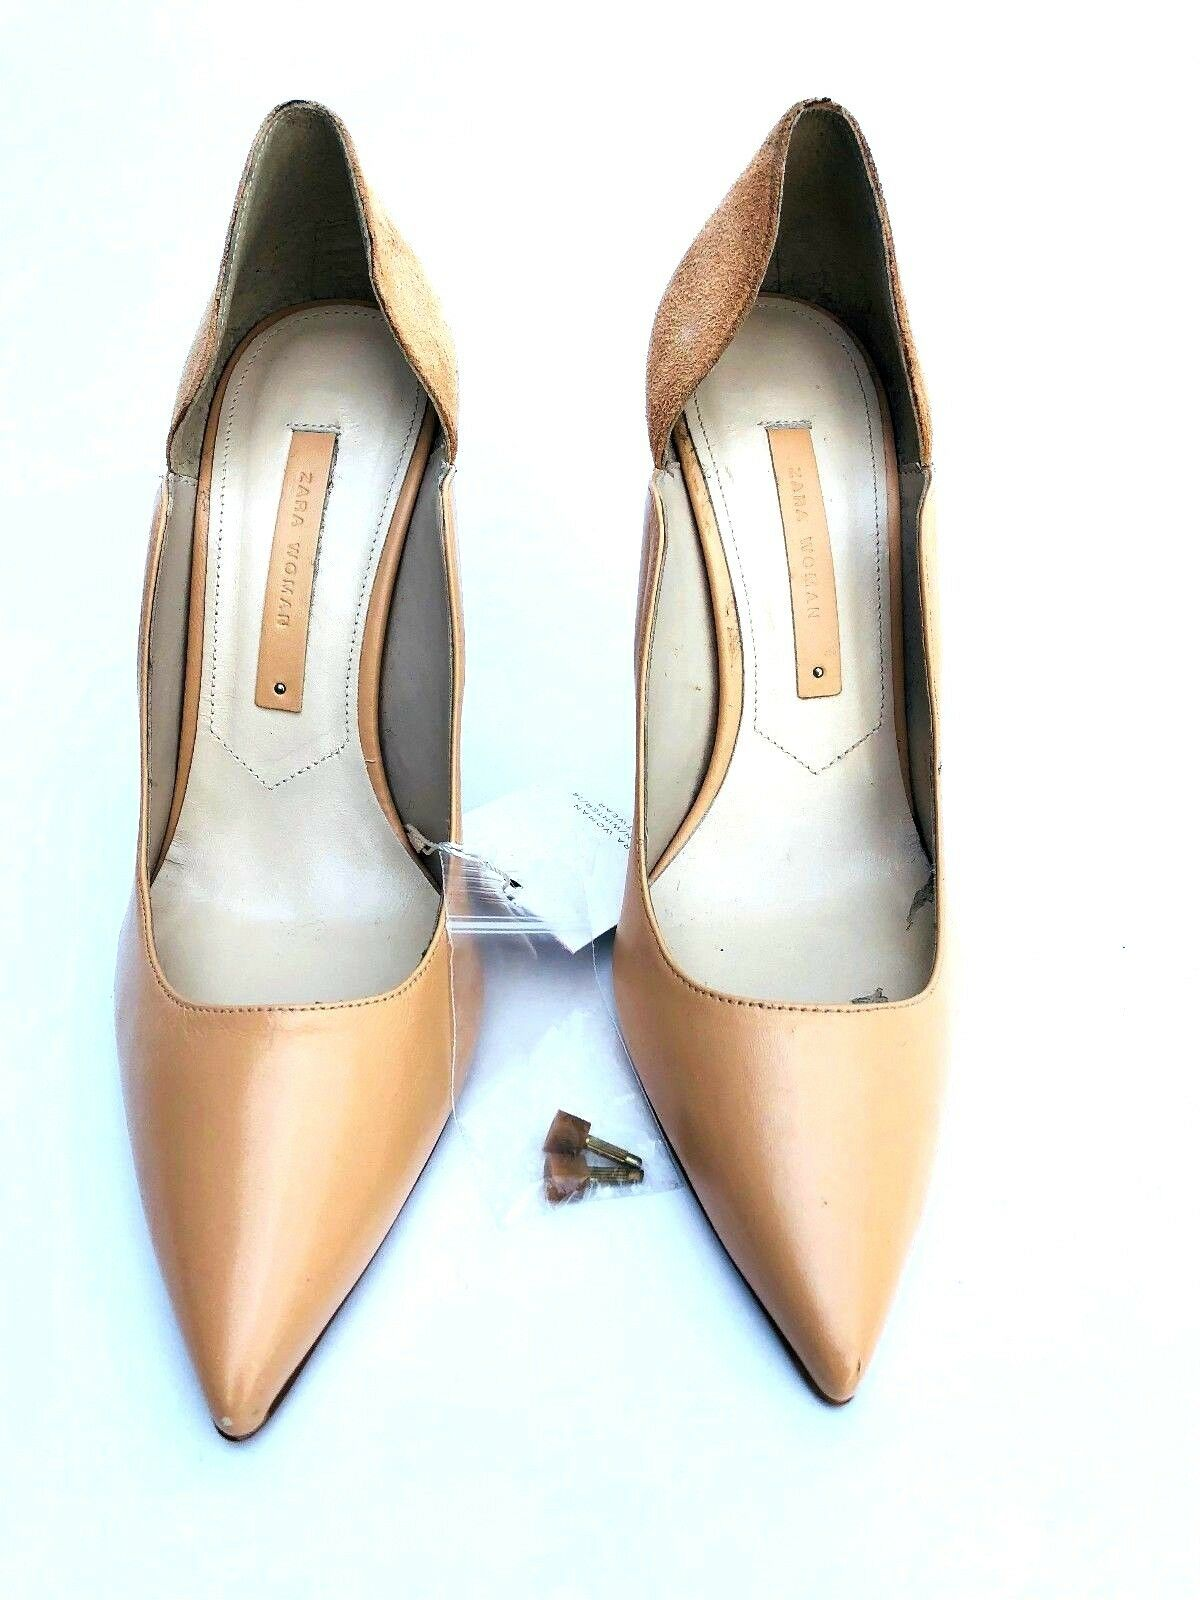 ZARA LEATHER NUDE COURT COURT COURT SHOES SIZE UK4 EUR37 US6.5 REF 5207 301 59efd3